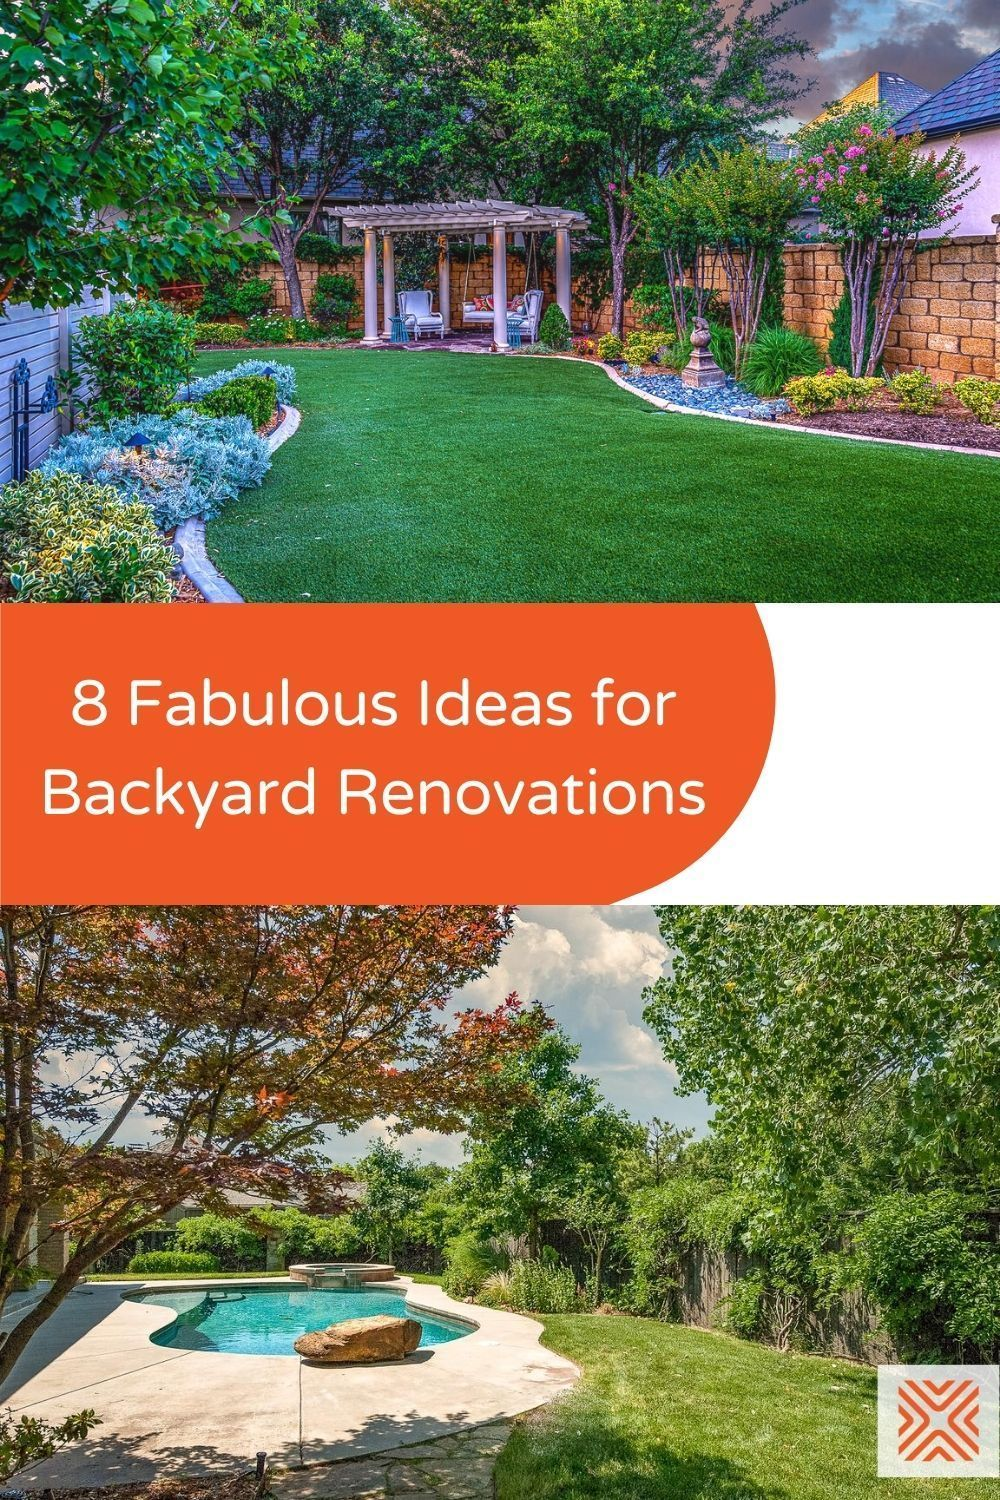 If you're looking for some design ideas to help you turn your backyard landscape into your private slice of heaven, then look no further than these 8 amazing backyard landscaping ideas.